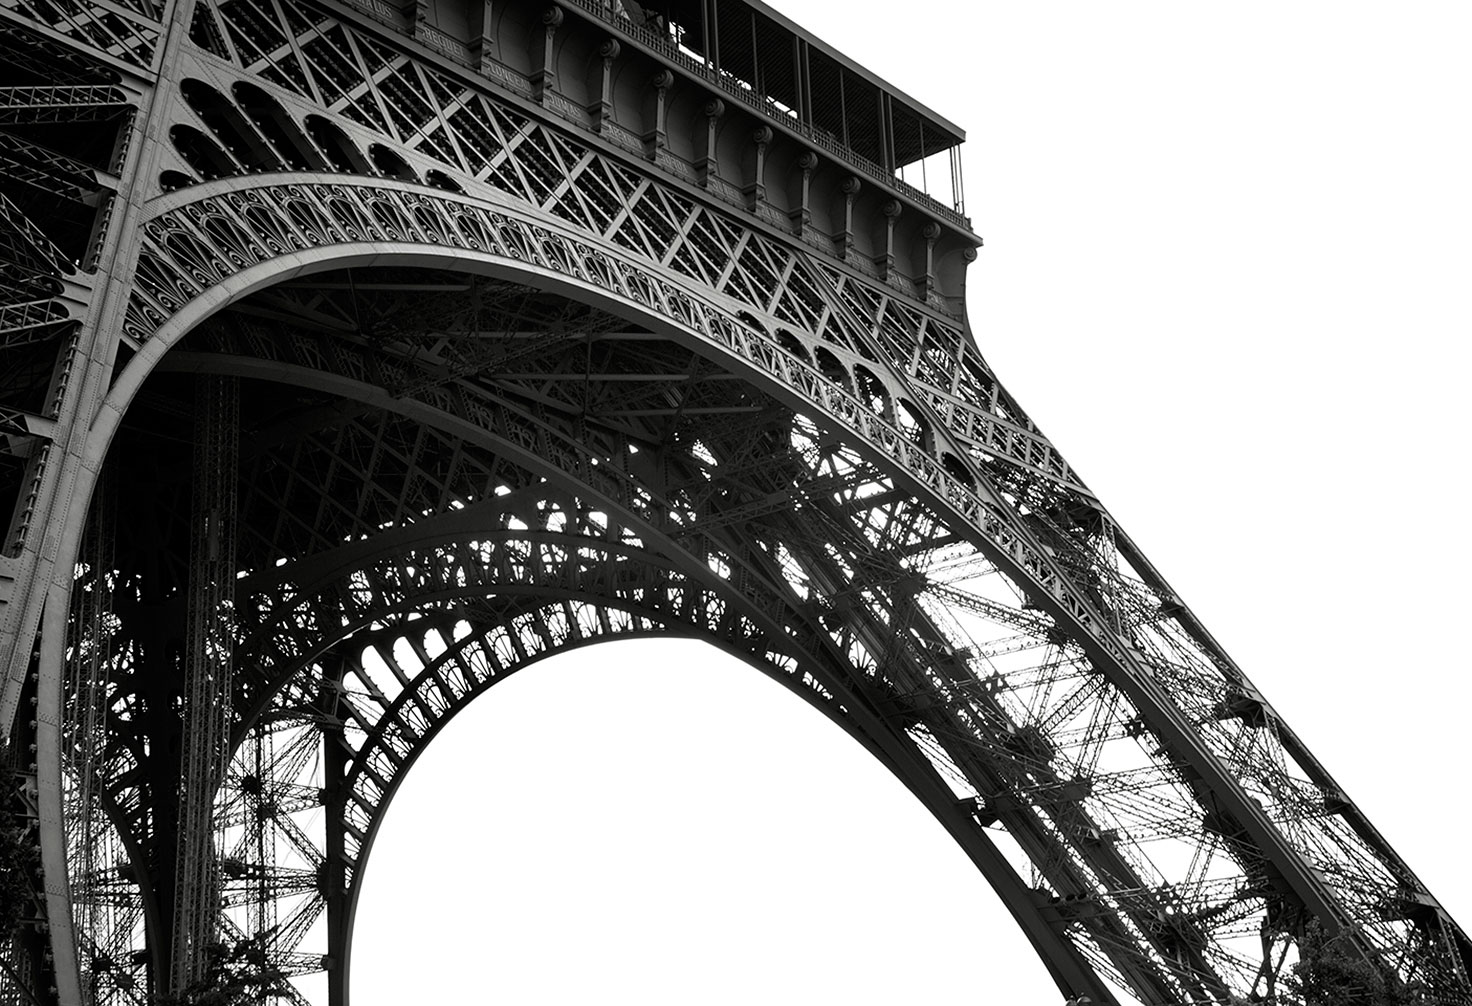 Detial of the  Eiffel Tower 2 of 10